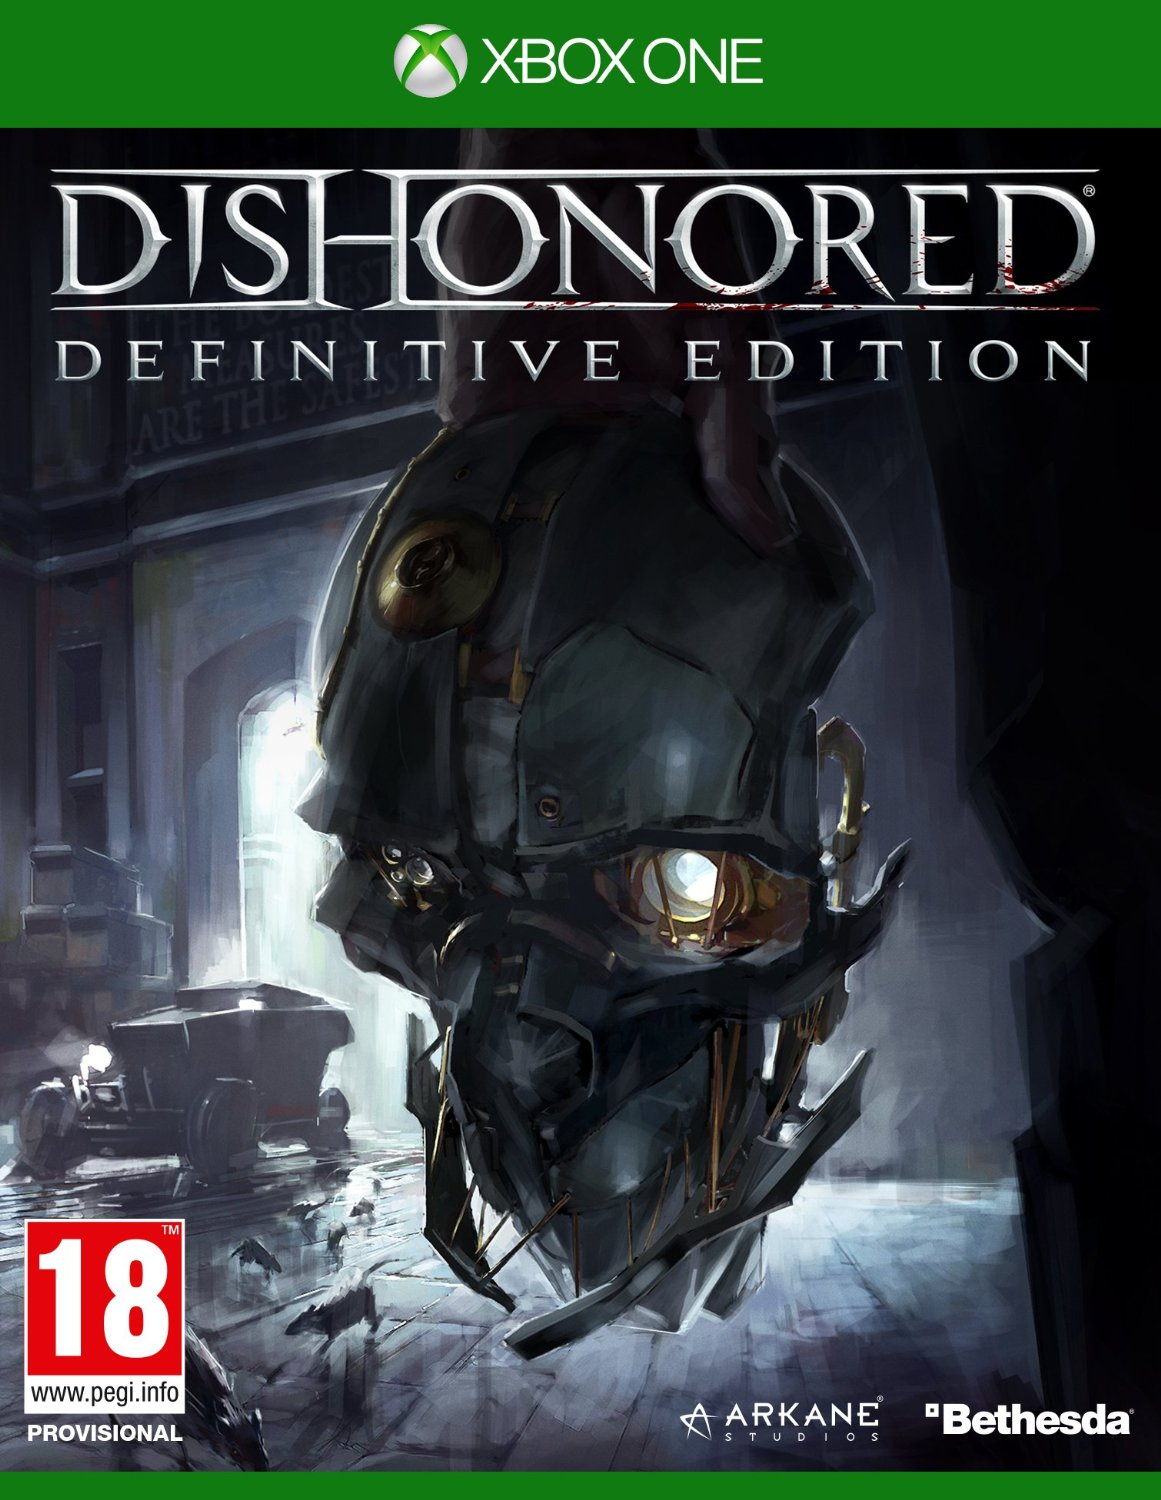 Dishonored: Definitive Edition-Xbox One                                                                                                                By:Arkane Studios                                     Eur:40.63 Ден:2199